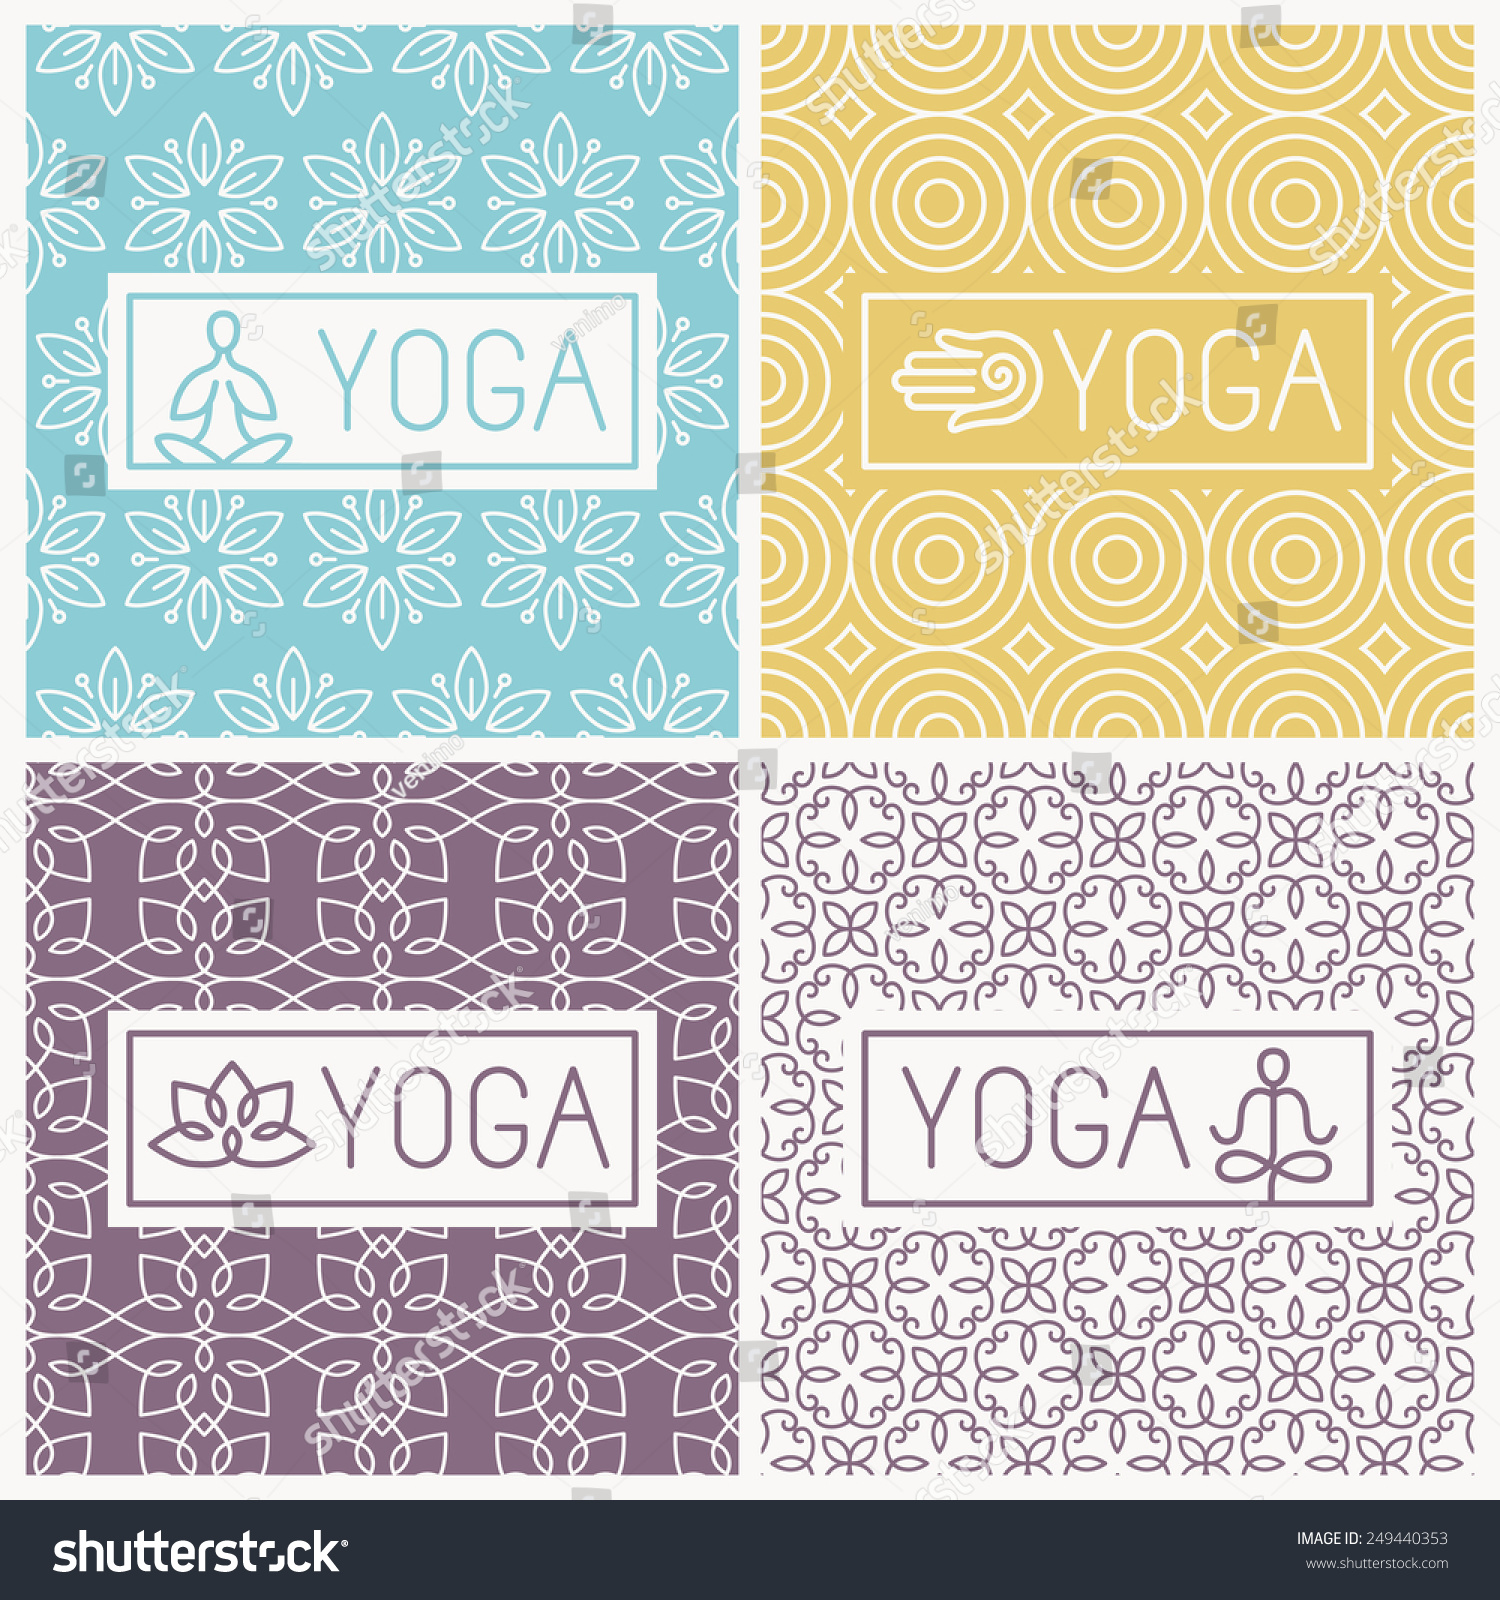 Graphic Design Elements Line : Vector yoga icons line badges graphic stock